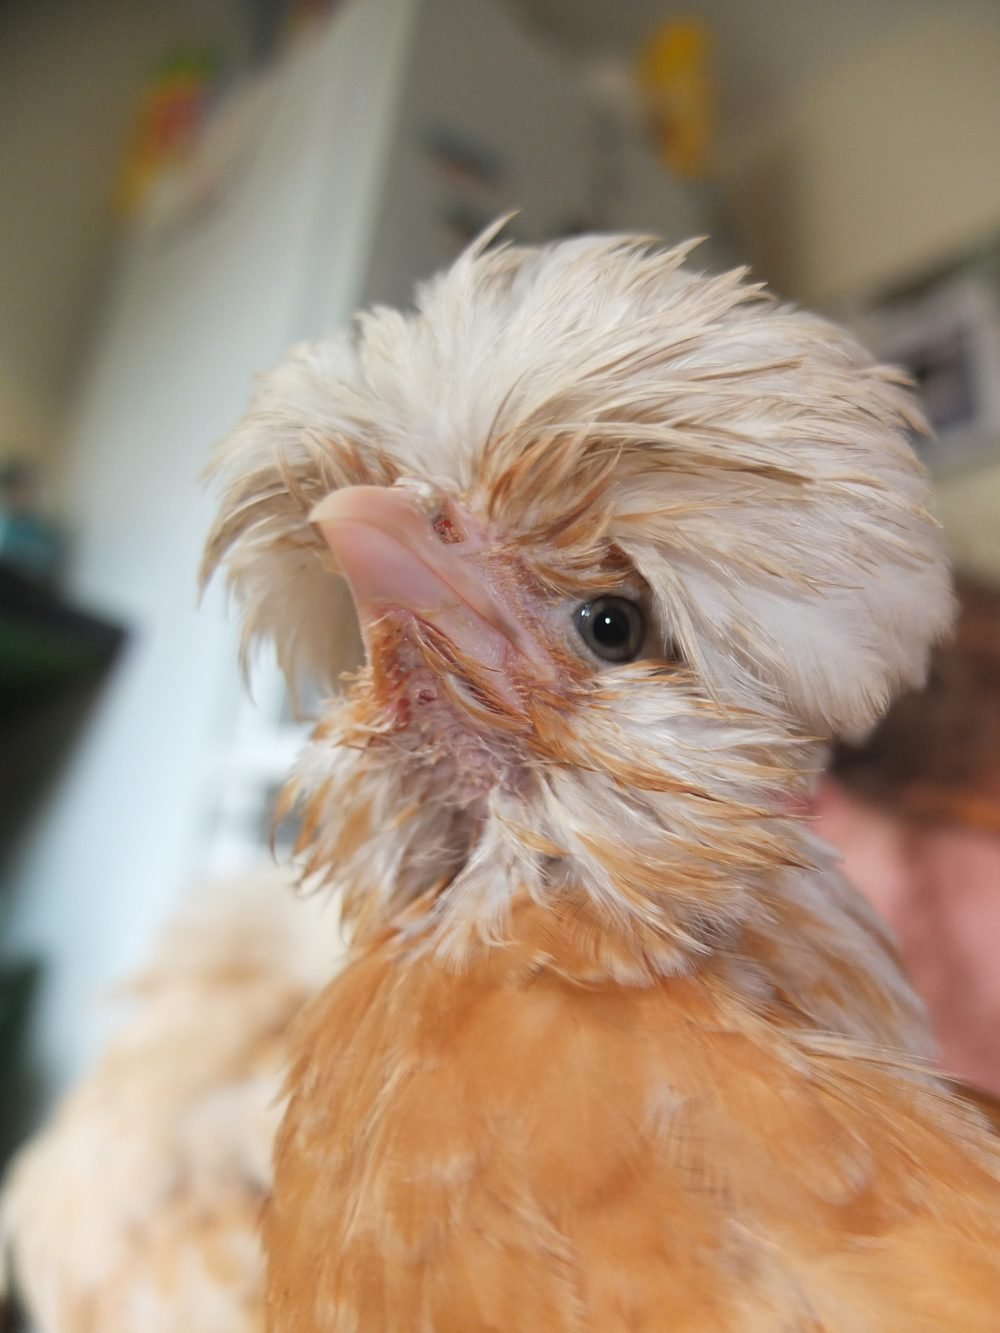 We Managed To Wash Their Crazy Hair Backyard Chickens